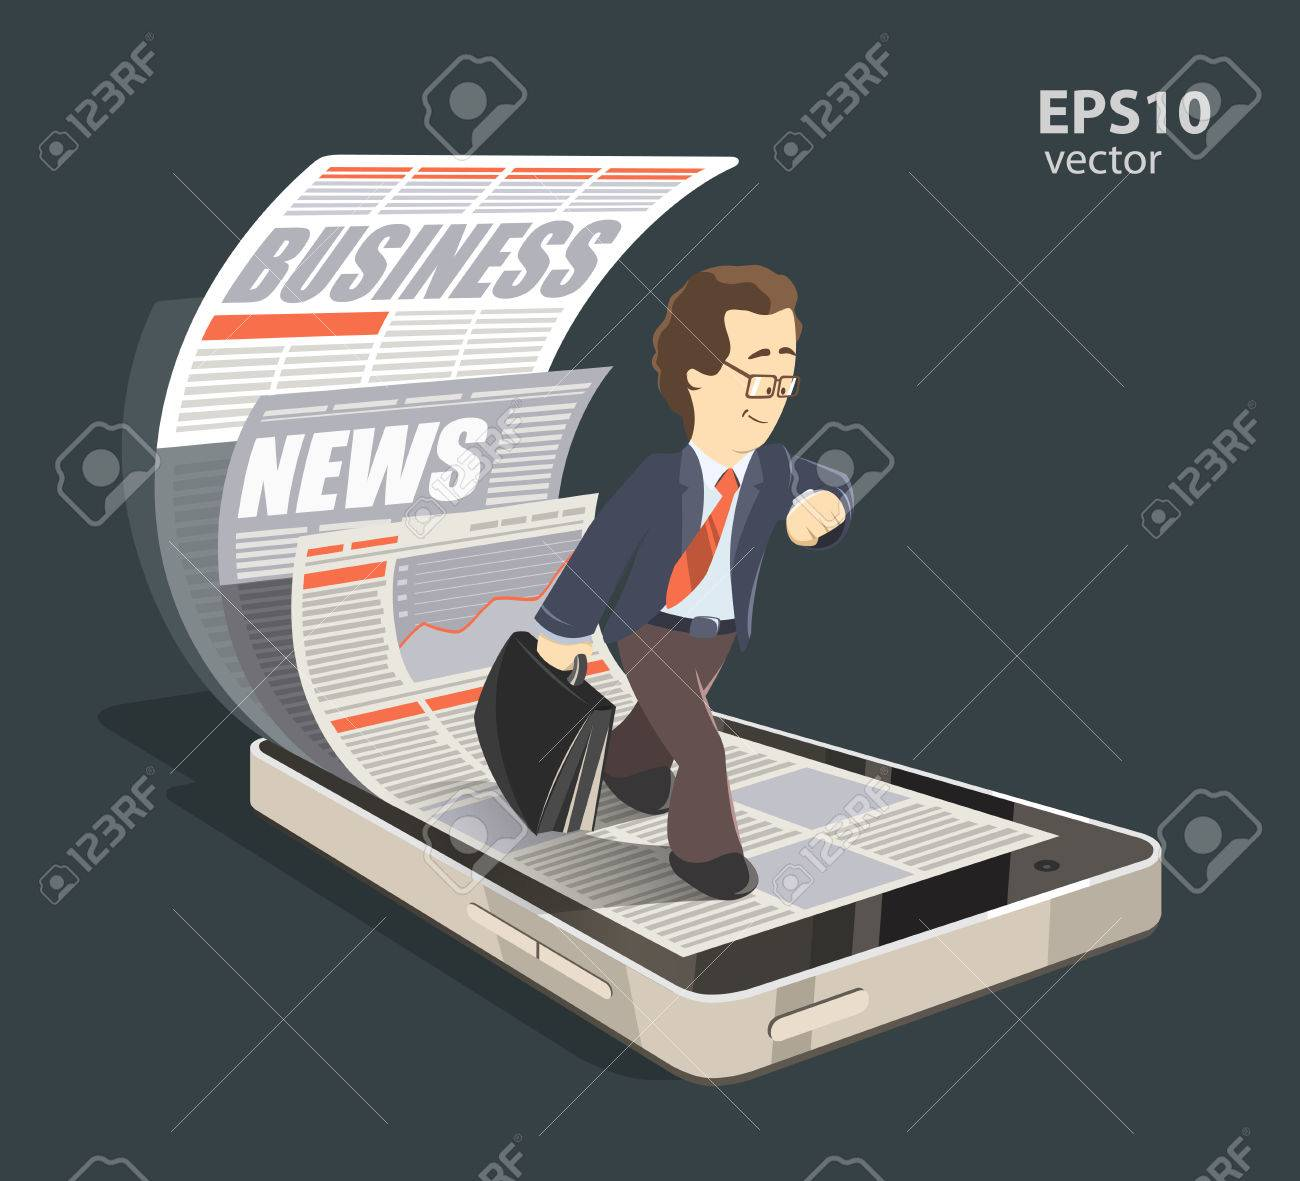 Mobile internet business news creative concept color 3d illustration. Young smile successful businessman reading new press using his mobile phone, smartphone. - 50568726